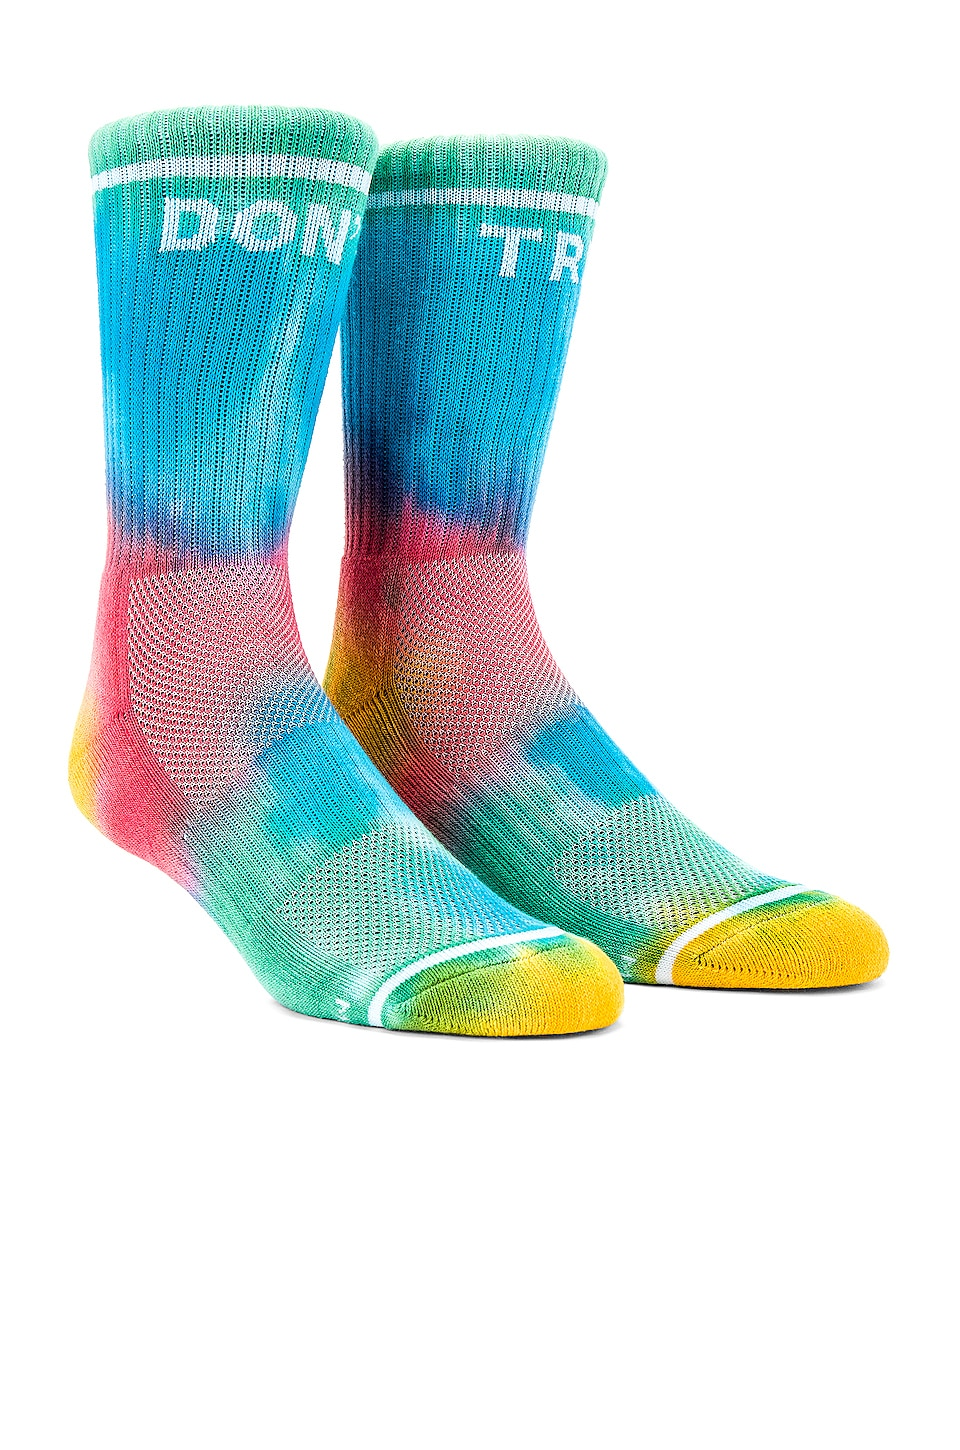 MOTHER Baby Steps Socks in Don't Trip Tie Dye